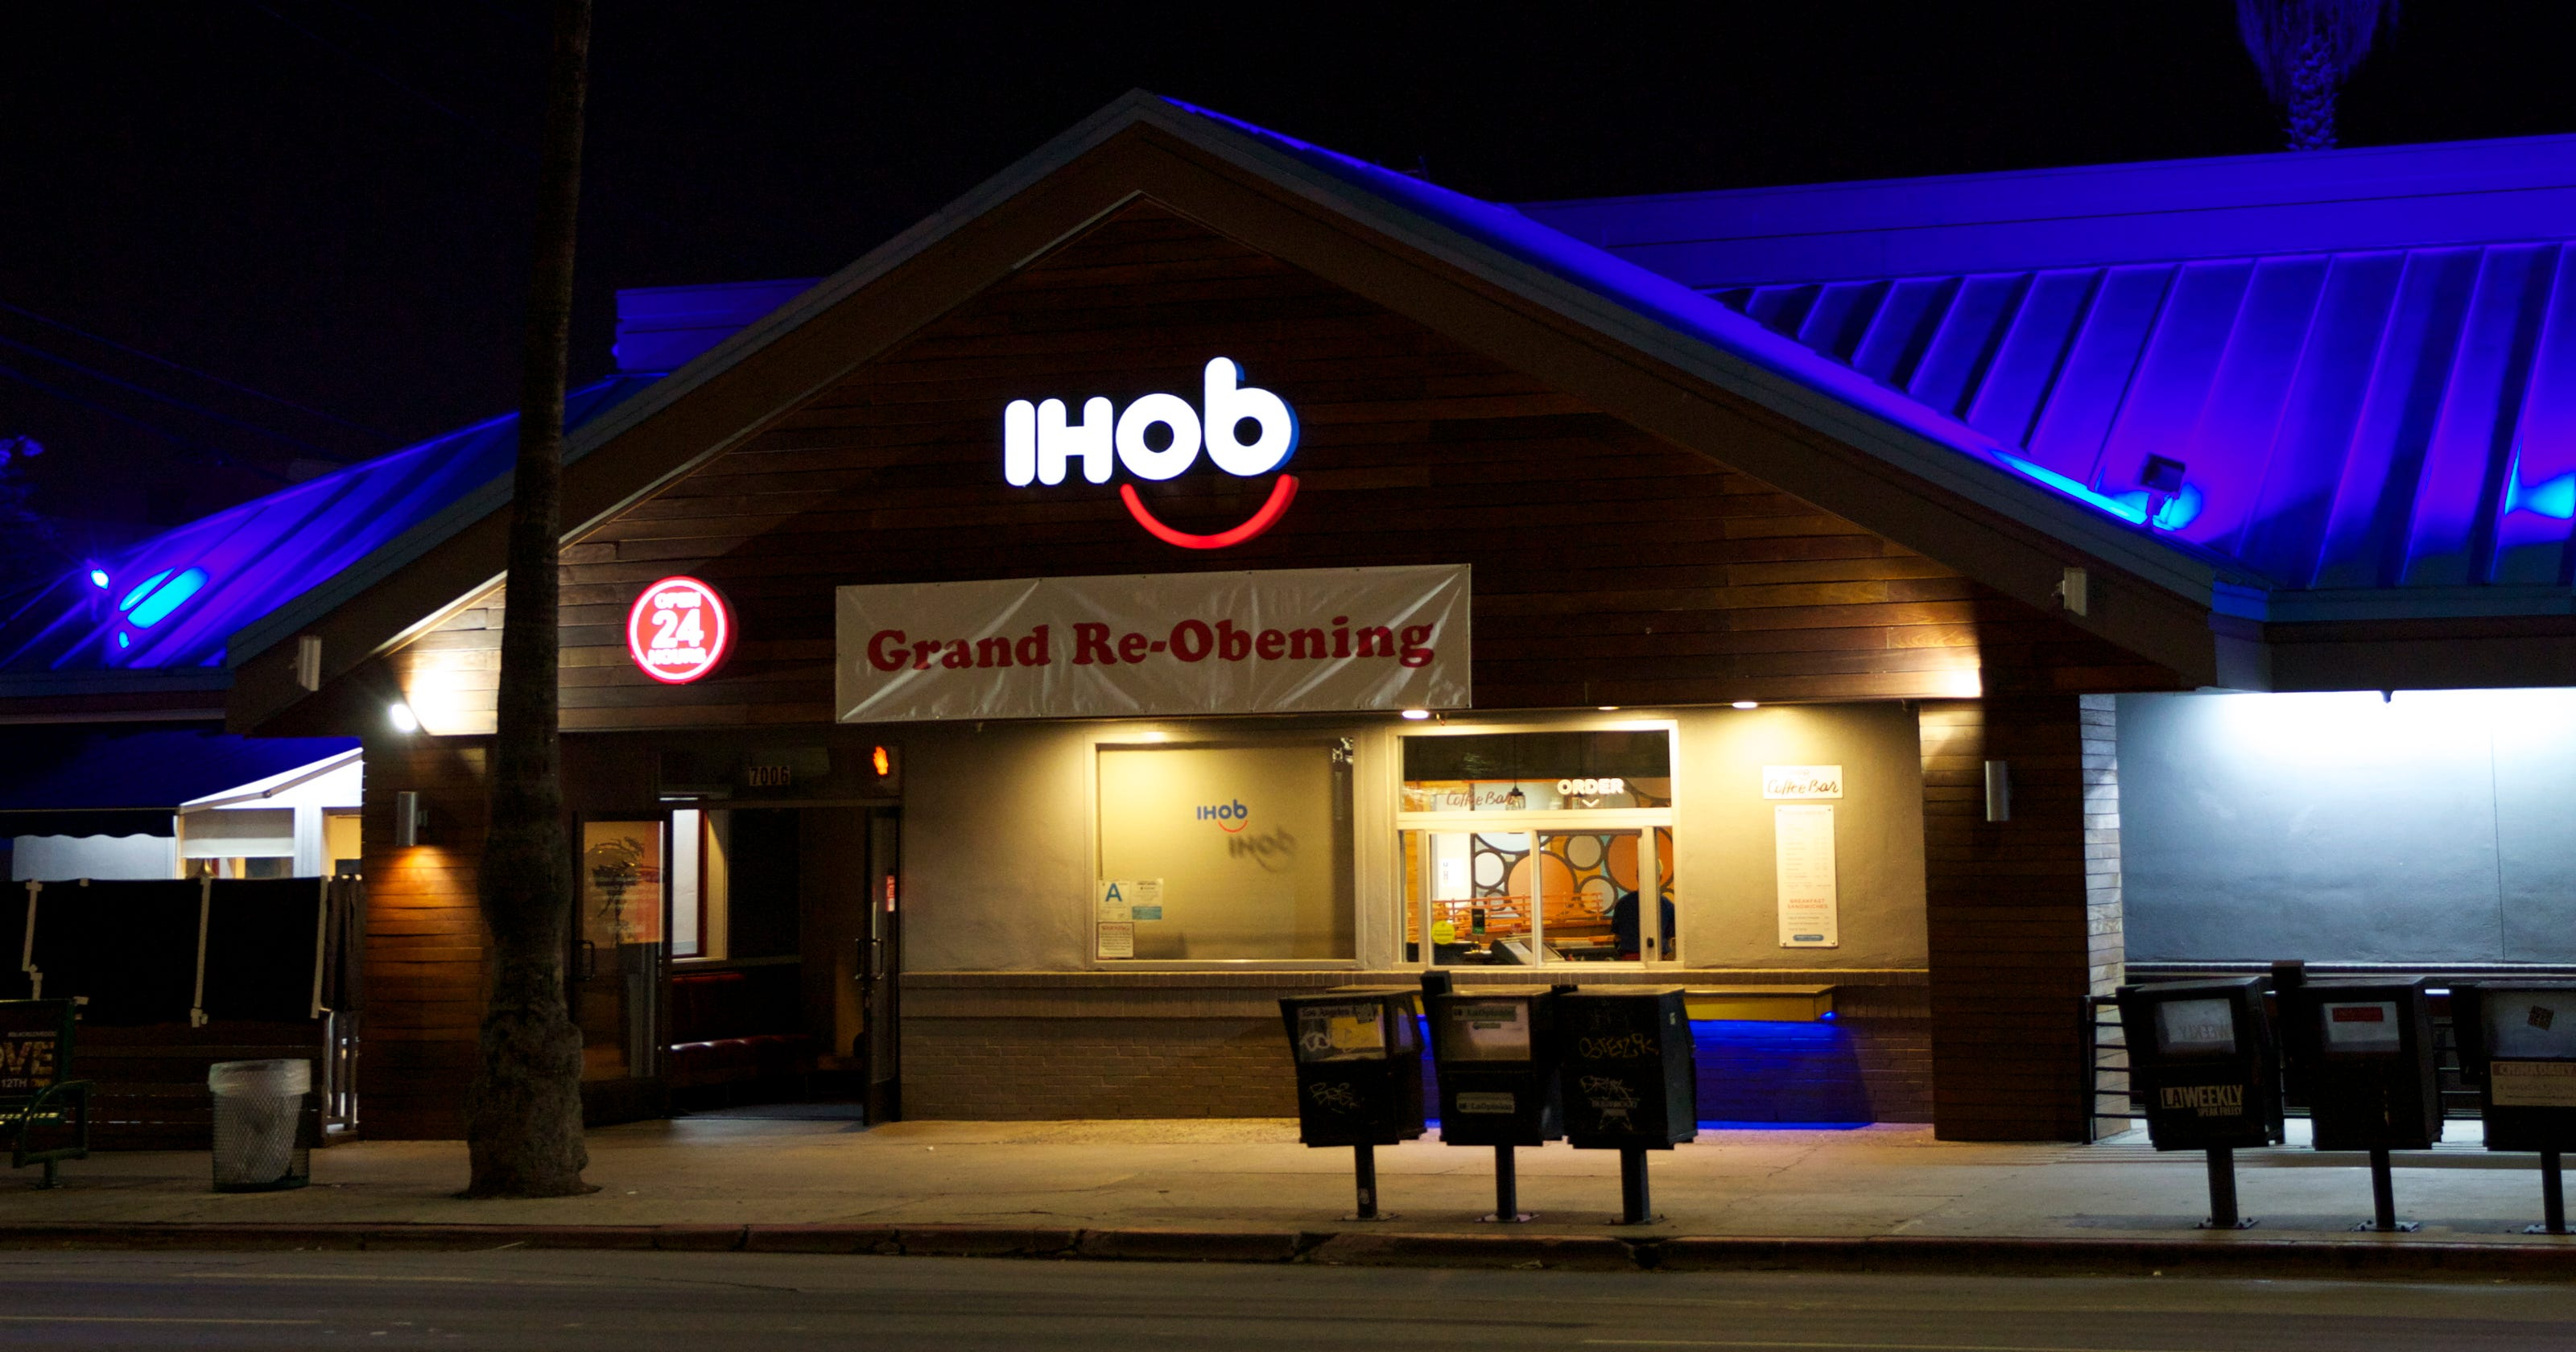 IHOP grilled by Burger King, Wendy's on Twitter over IHOb name change